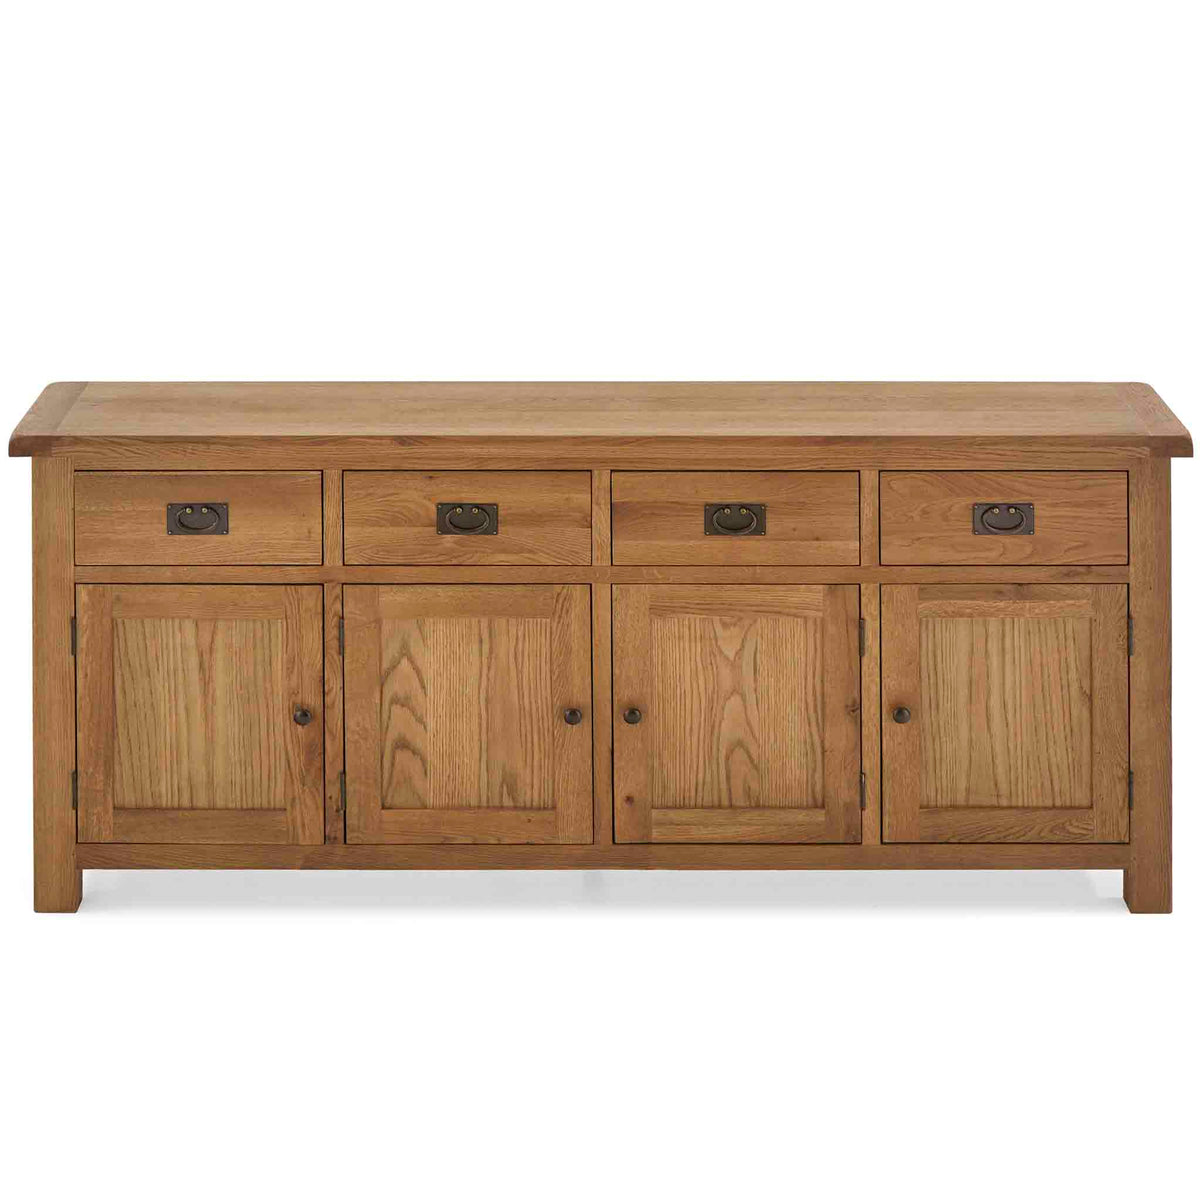 Zelah Oak Extra Large Sideboard - Front view showing top